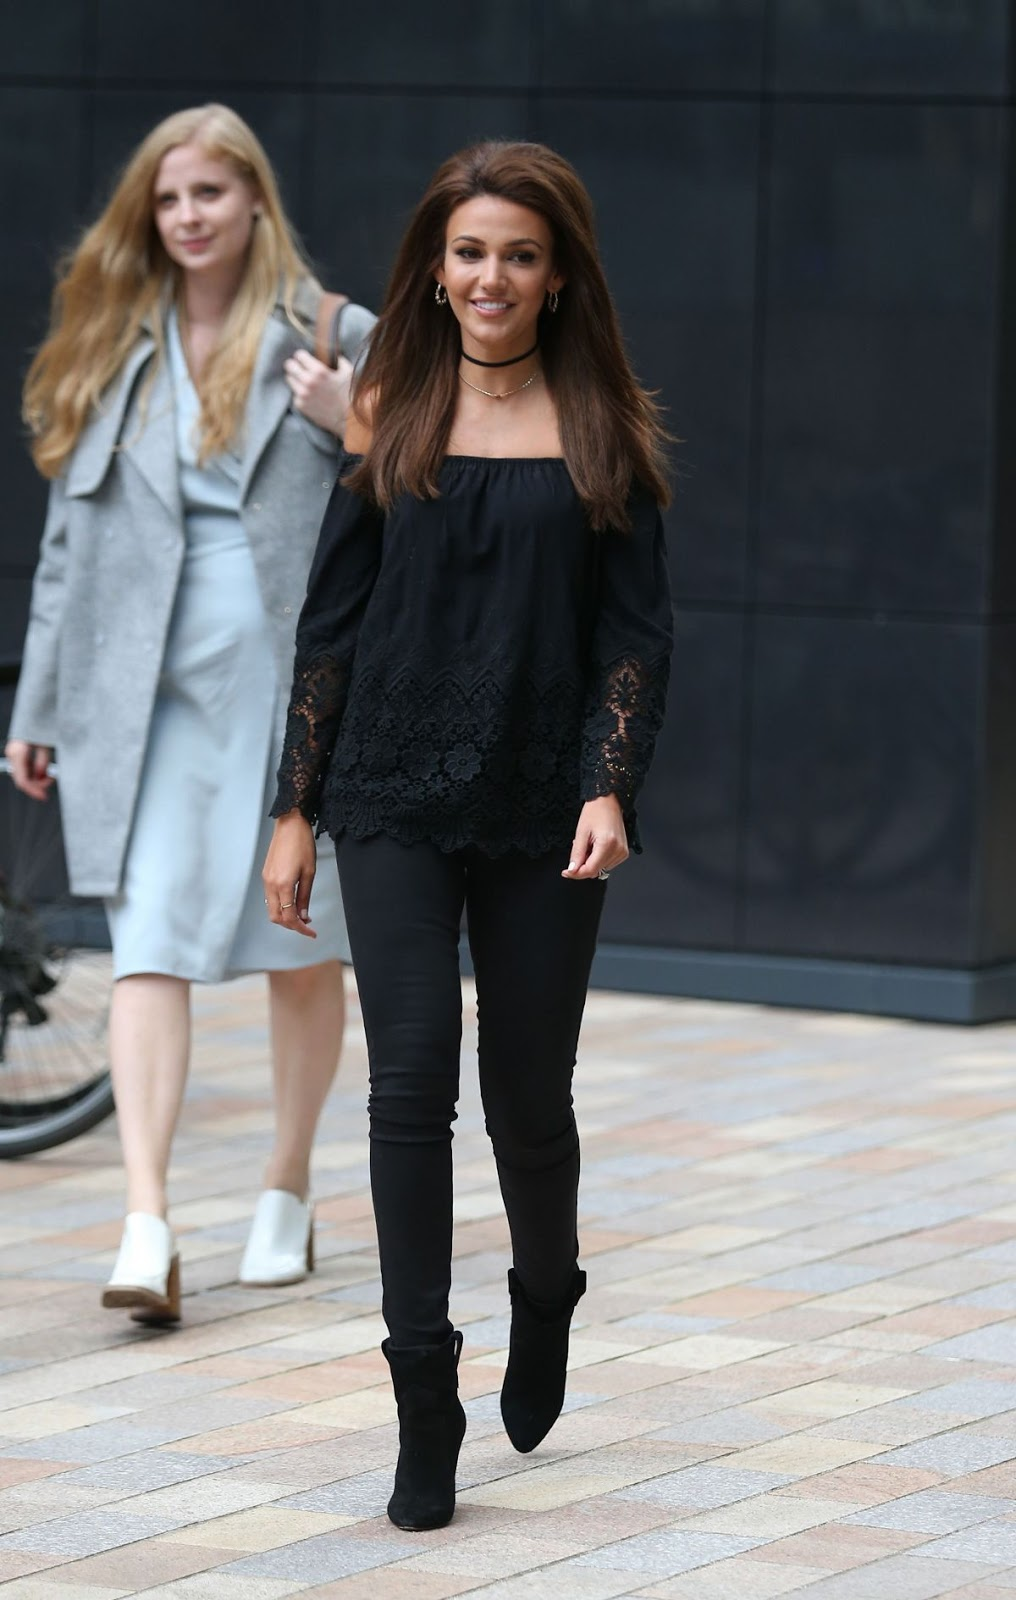 HD Photos Michelle Keegan in Black dress Arrives At Our Girl Premiere In Manchester